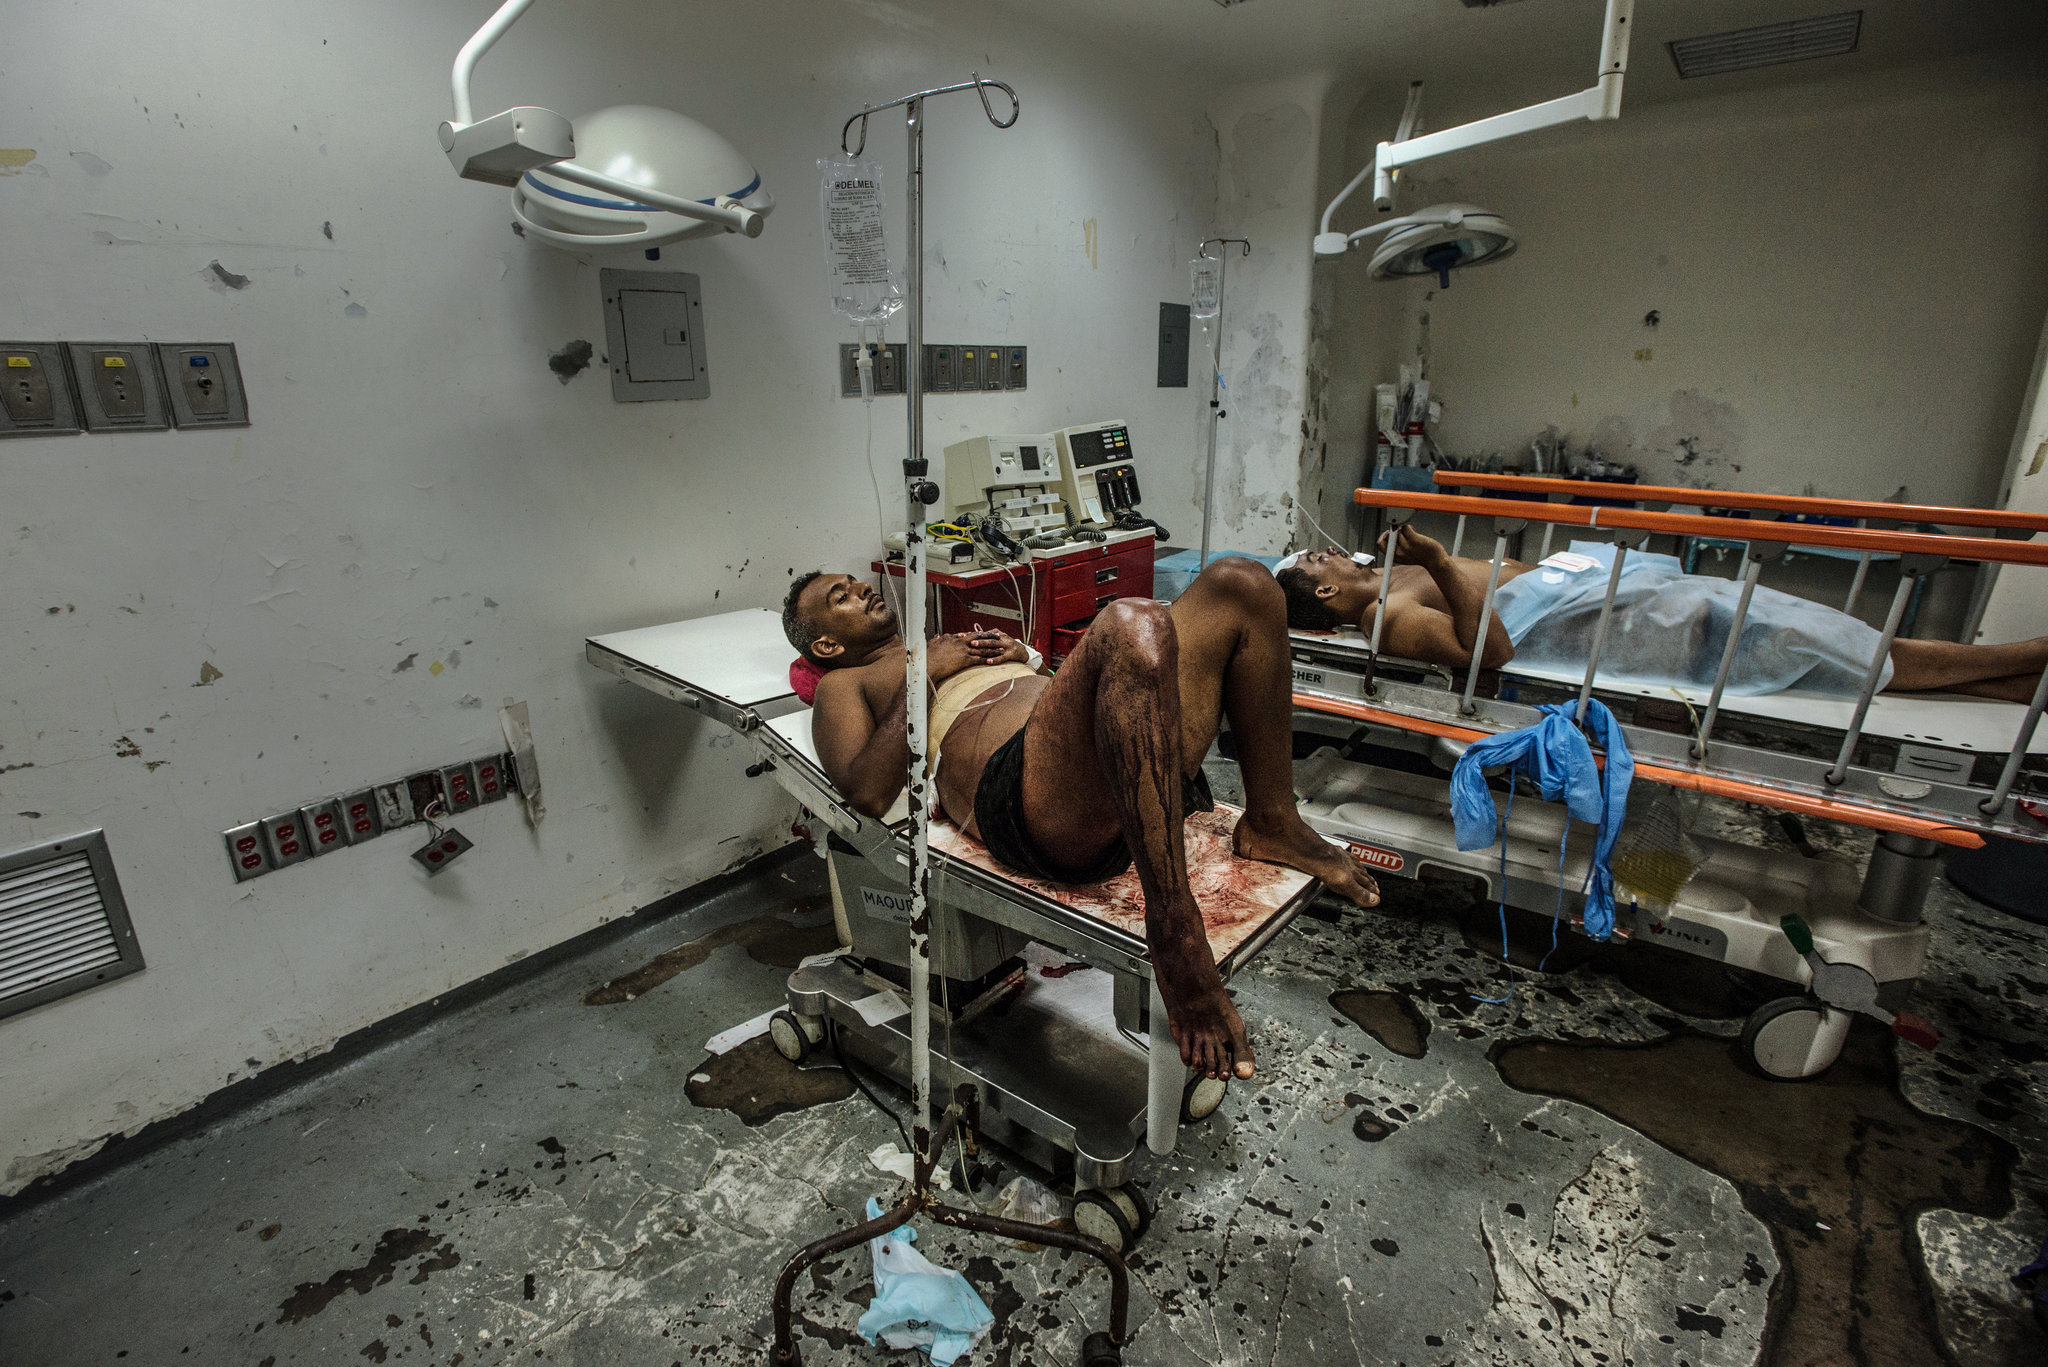 Venezuela crisis: Venezuela   s hospitals reduced to    wartime conditions